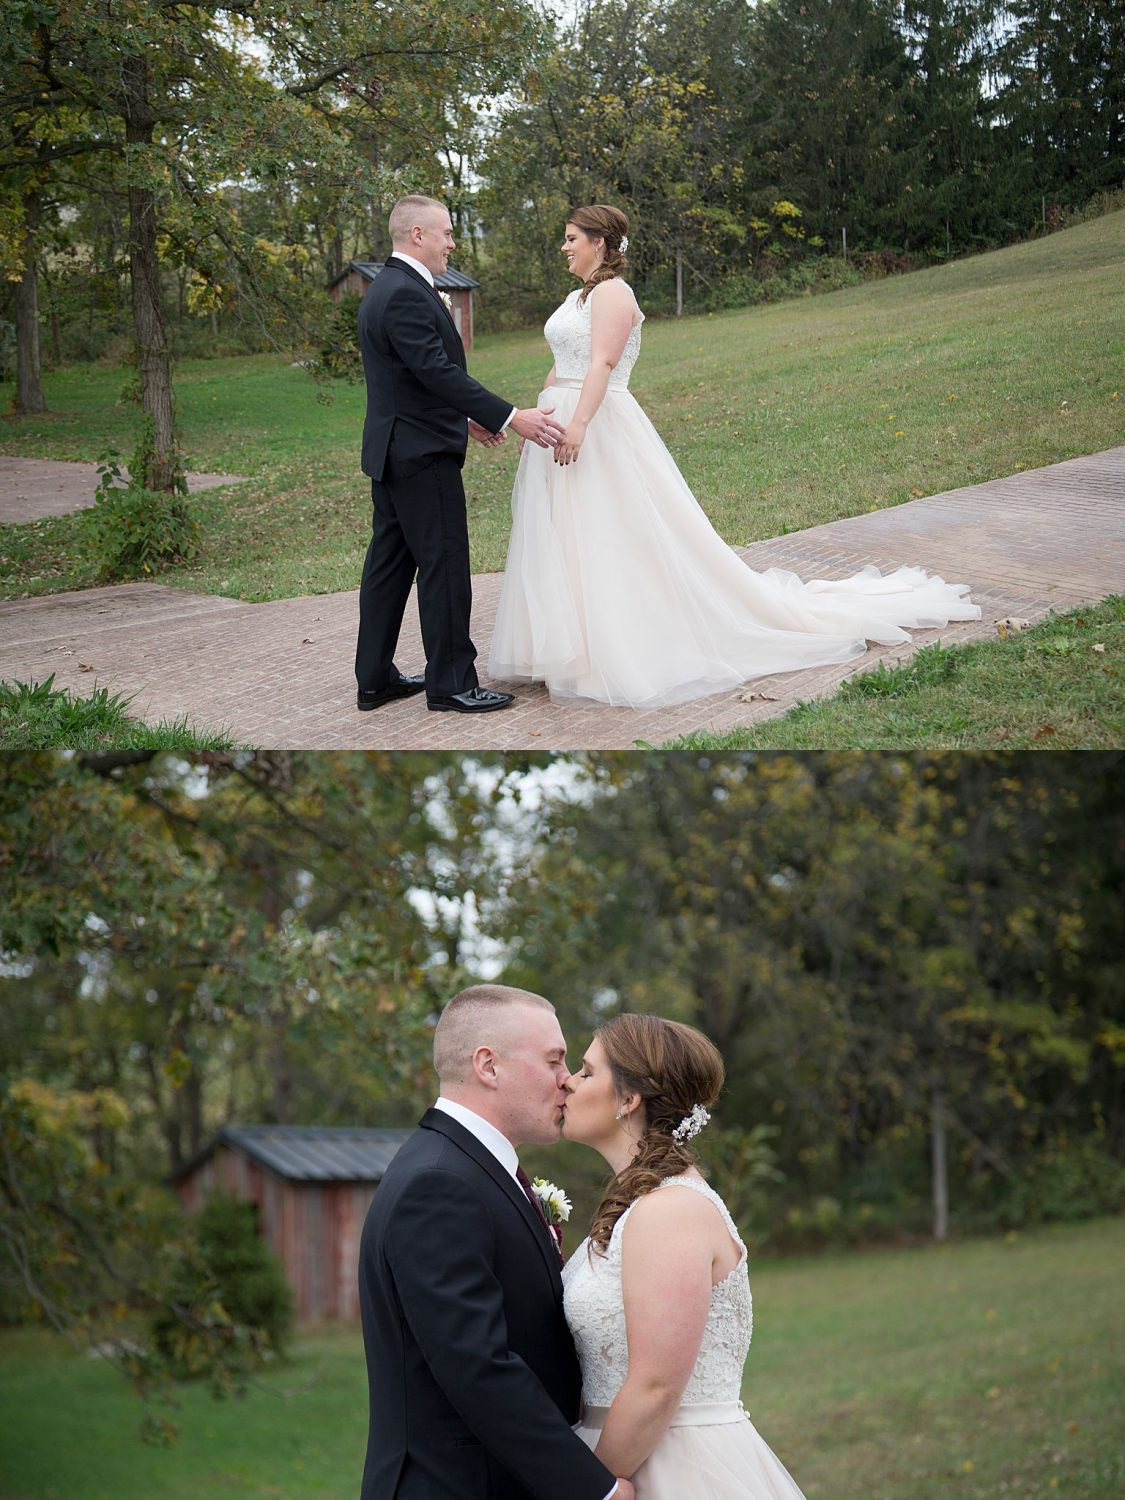 The bride and groom embrace after seeing each other for the first time.